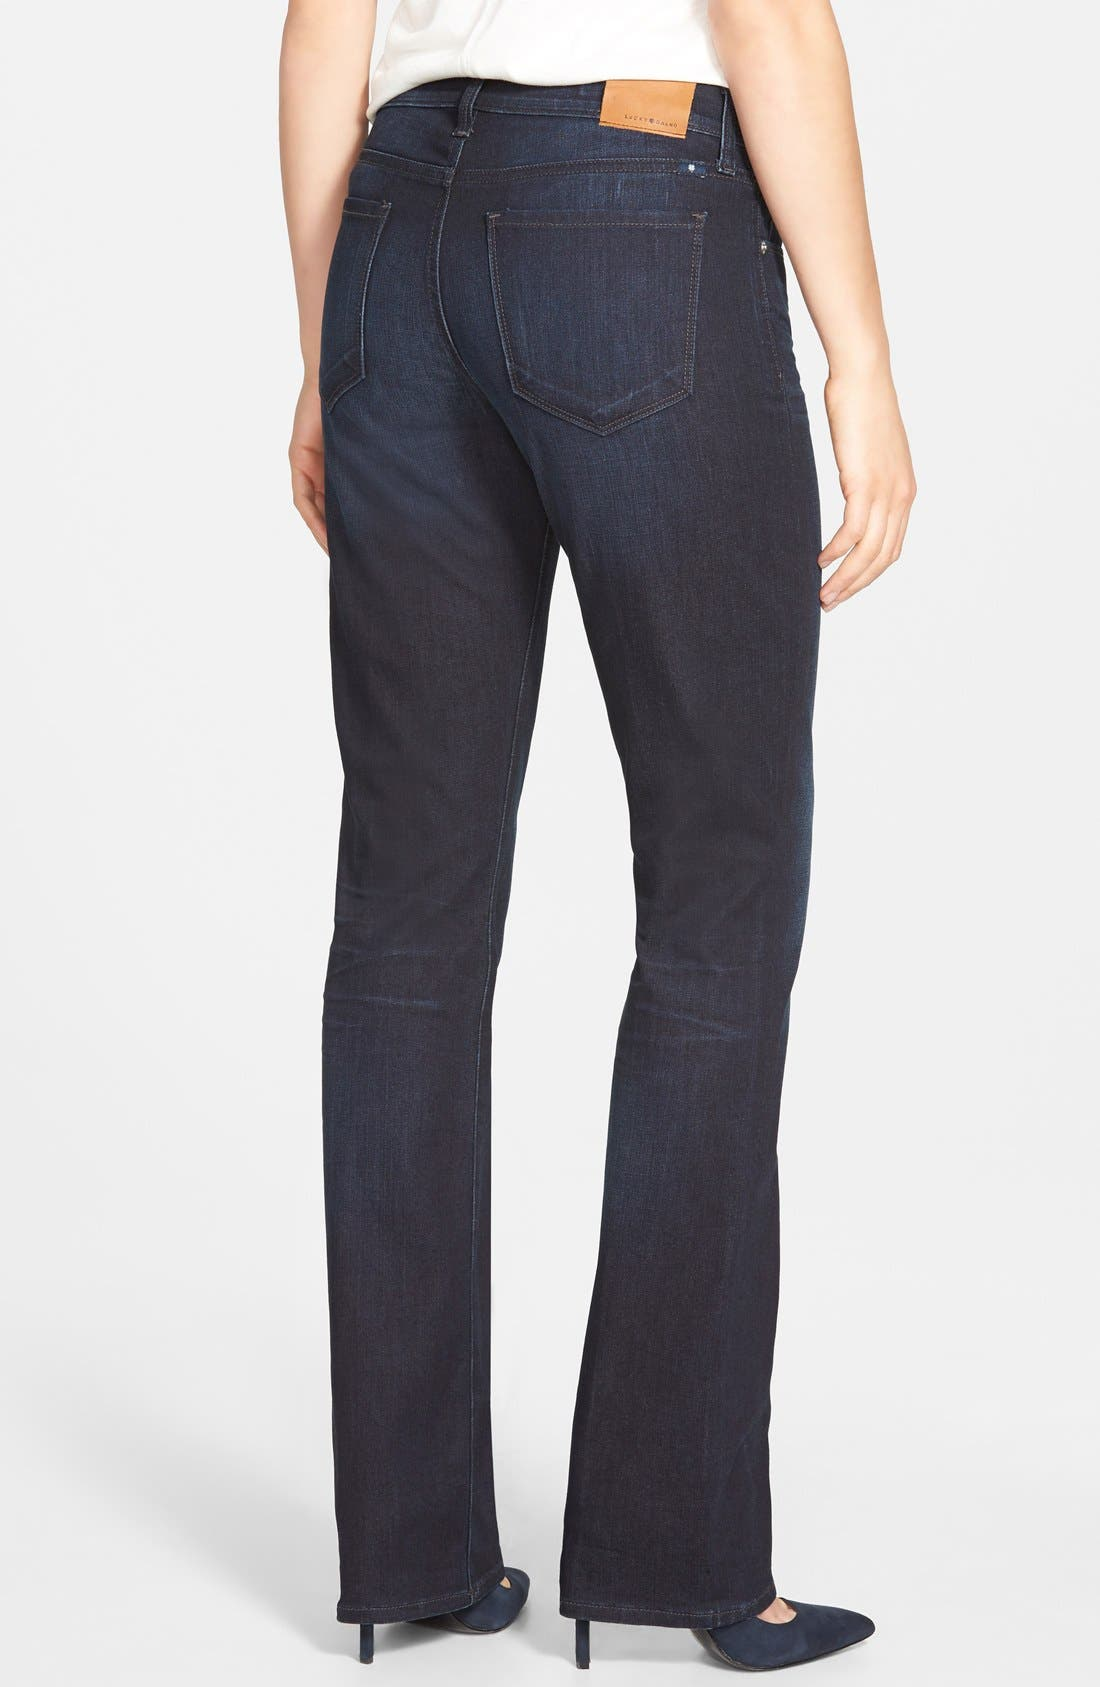 'Brooke' Stretch Bootcut Jeans,                             Alternate thumbnail 4, color,                             410